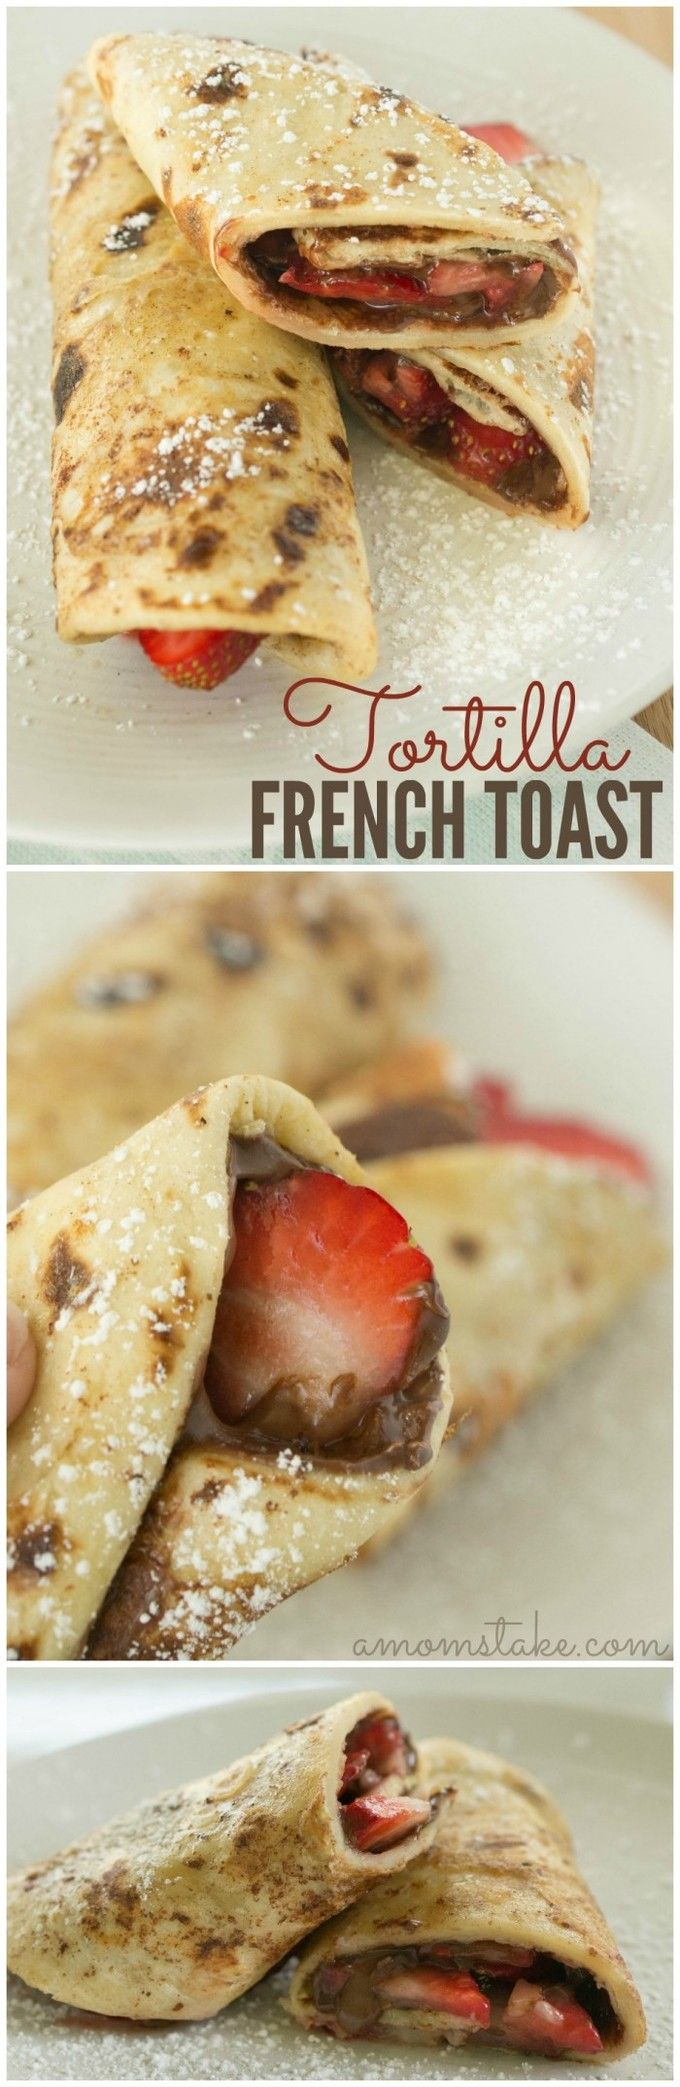 French Toast made with Tortillas